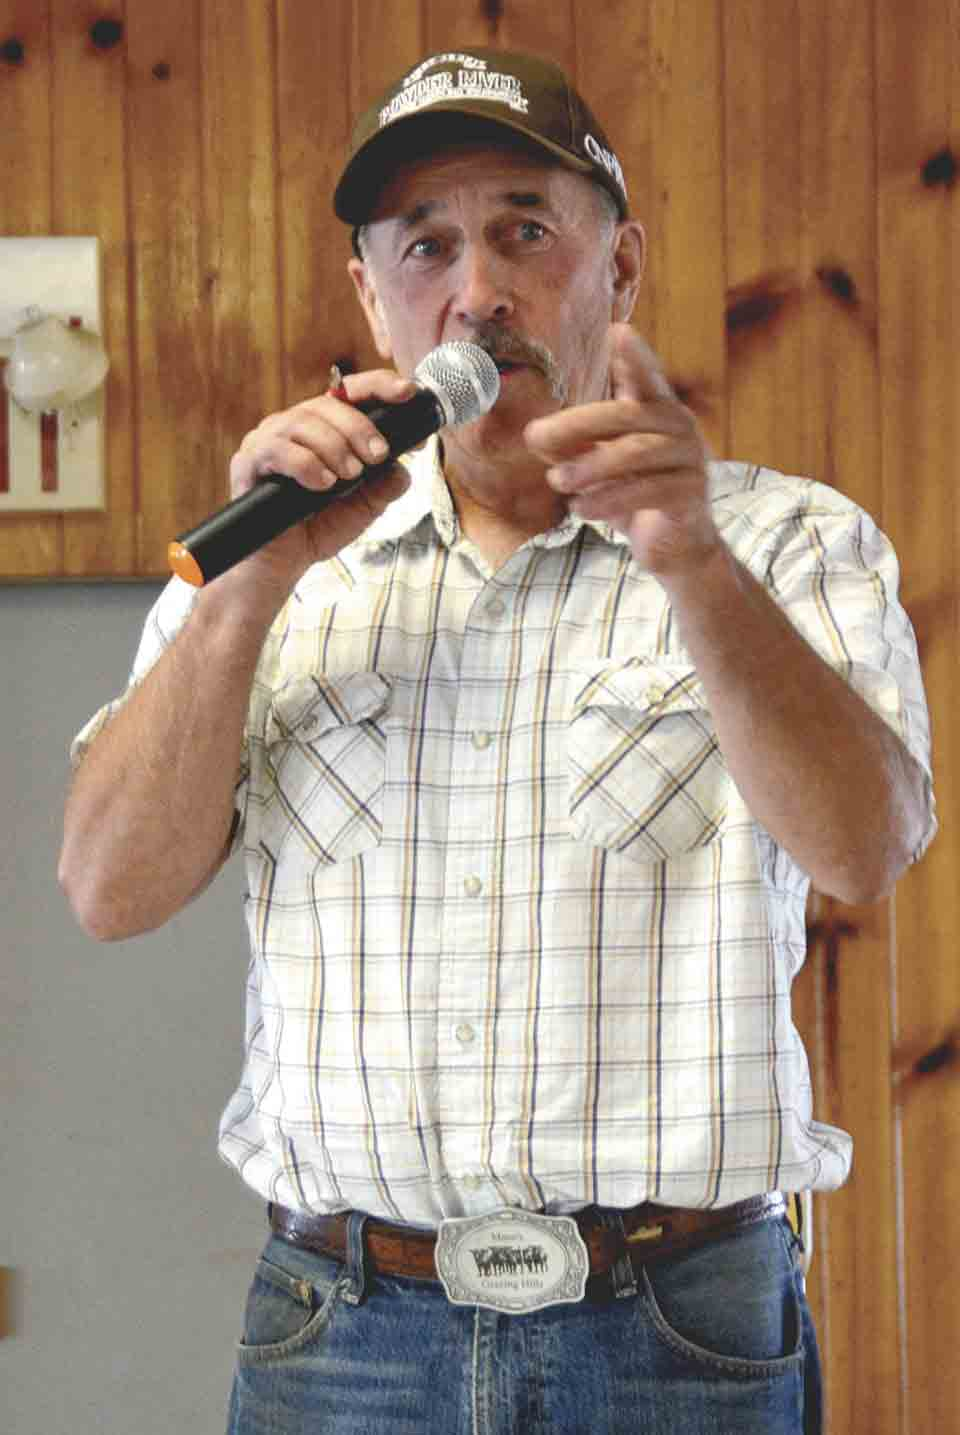 Tom Mann has been a featured auctioneer at the Fayette County 4-H Achievement Auction since 1987. Mann said that for as long as he can, he plans to come back to the Fayette County 4-H Achievement Auction at the fair each year to lend his auctioneering skills.Chris DeBack photo...